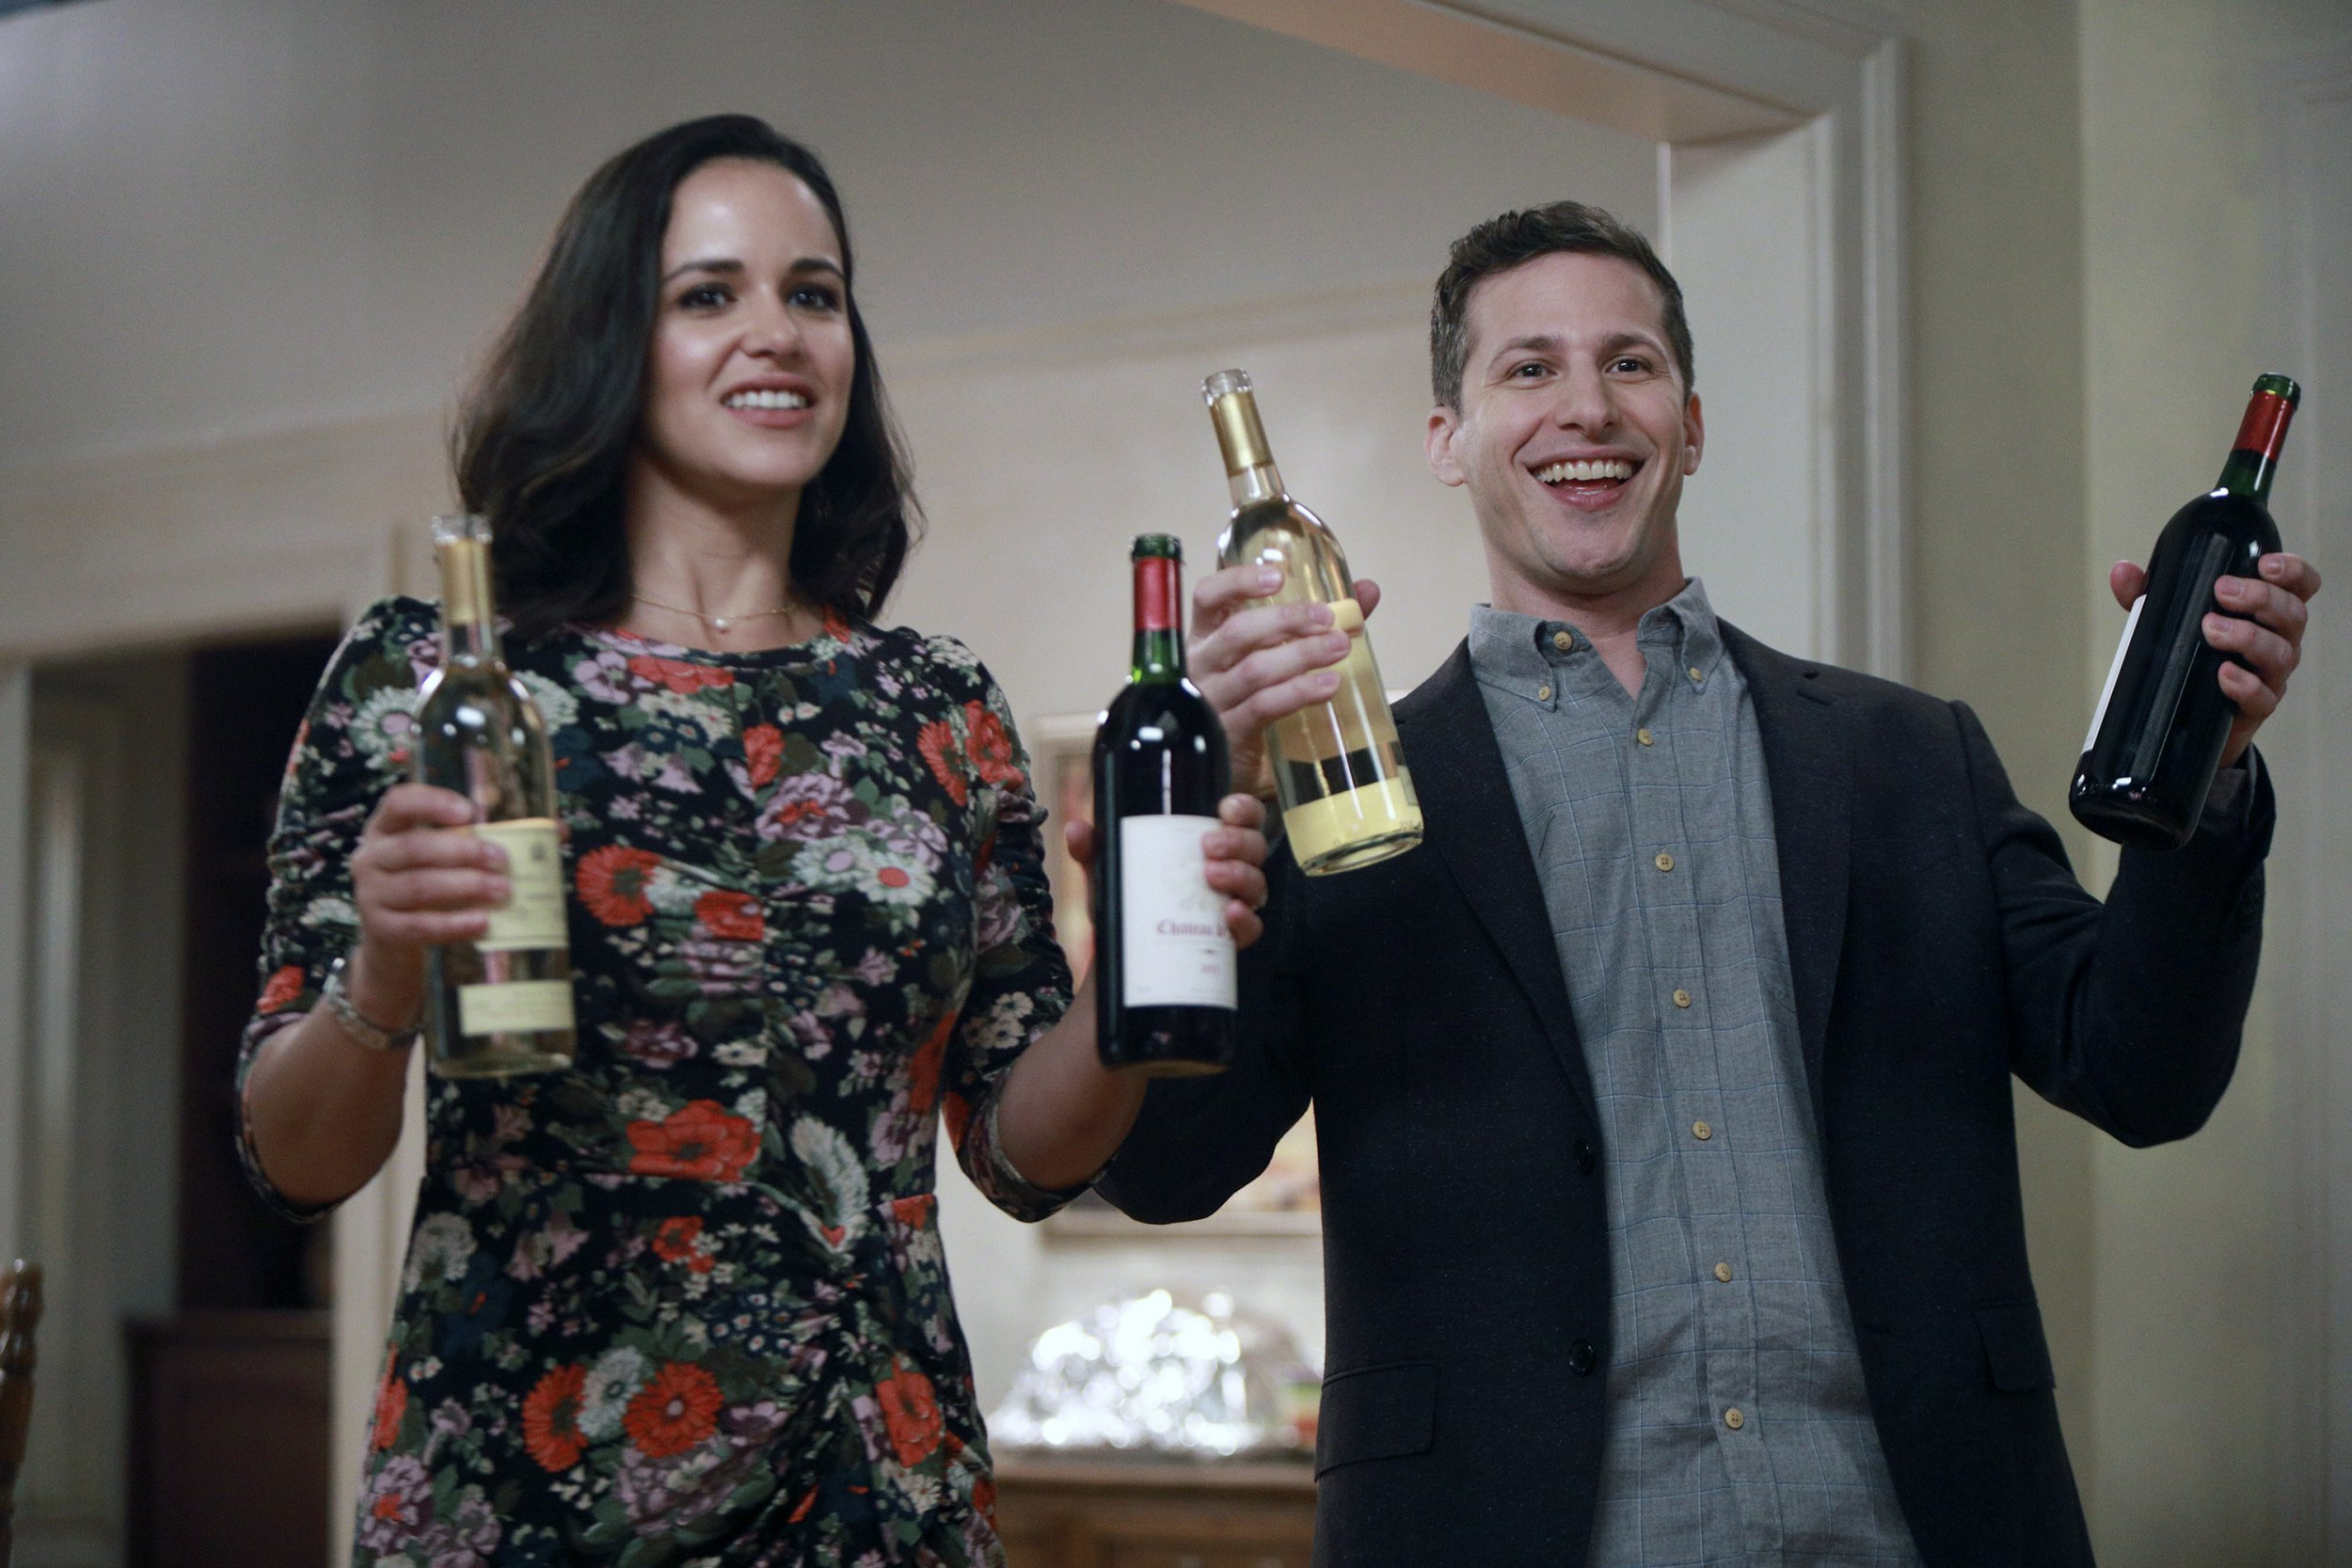 """BROOKLYN NINE-NINE -- """"Two Turkeys"""" Episode 508 -- Pictured: (l-r) Melissa Fumero as Amy Santiago, Andy Samberg as Jake Peralta -- (Photo by: Jordin Althaus/Fox/Universal Television/NBCU Photo Bank via Getty Images)"""